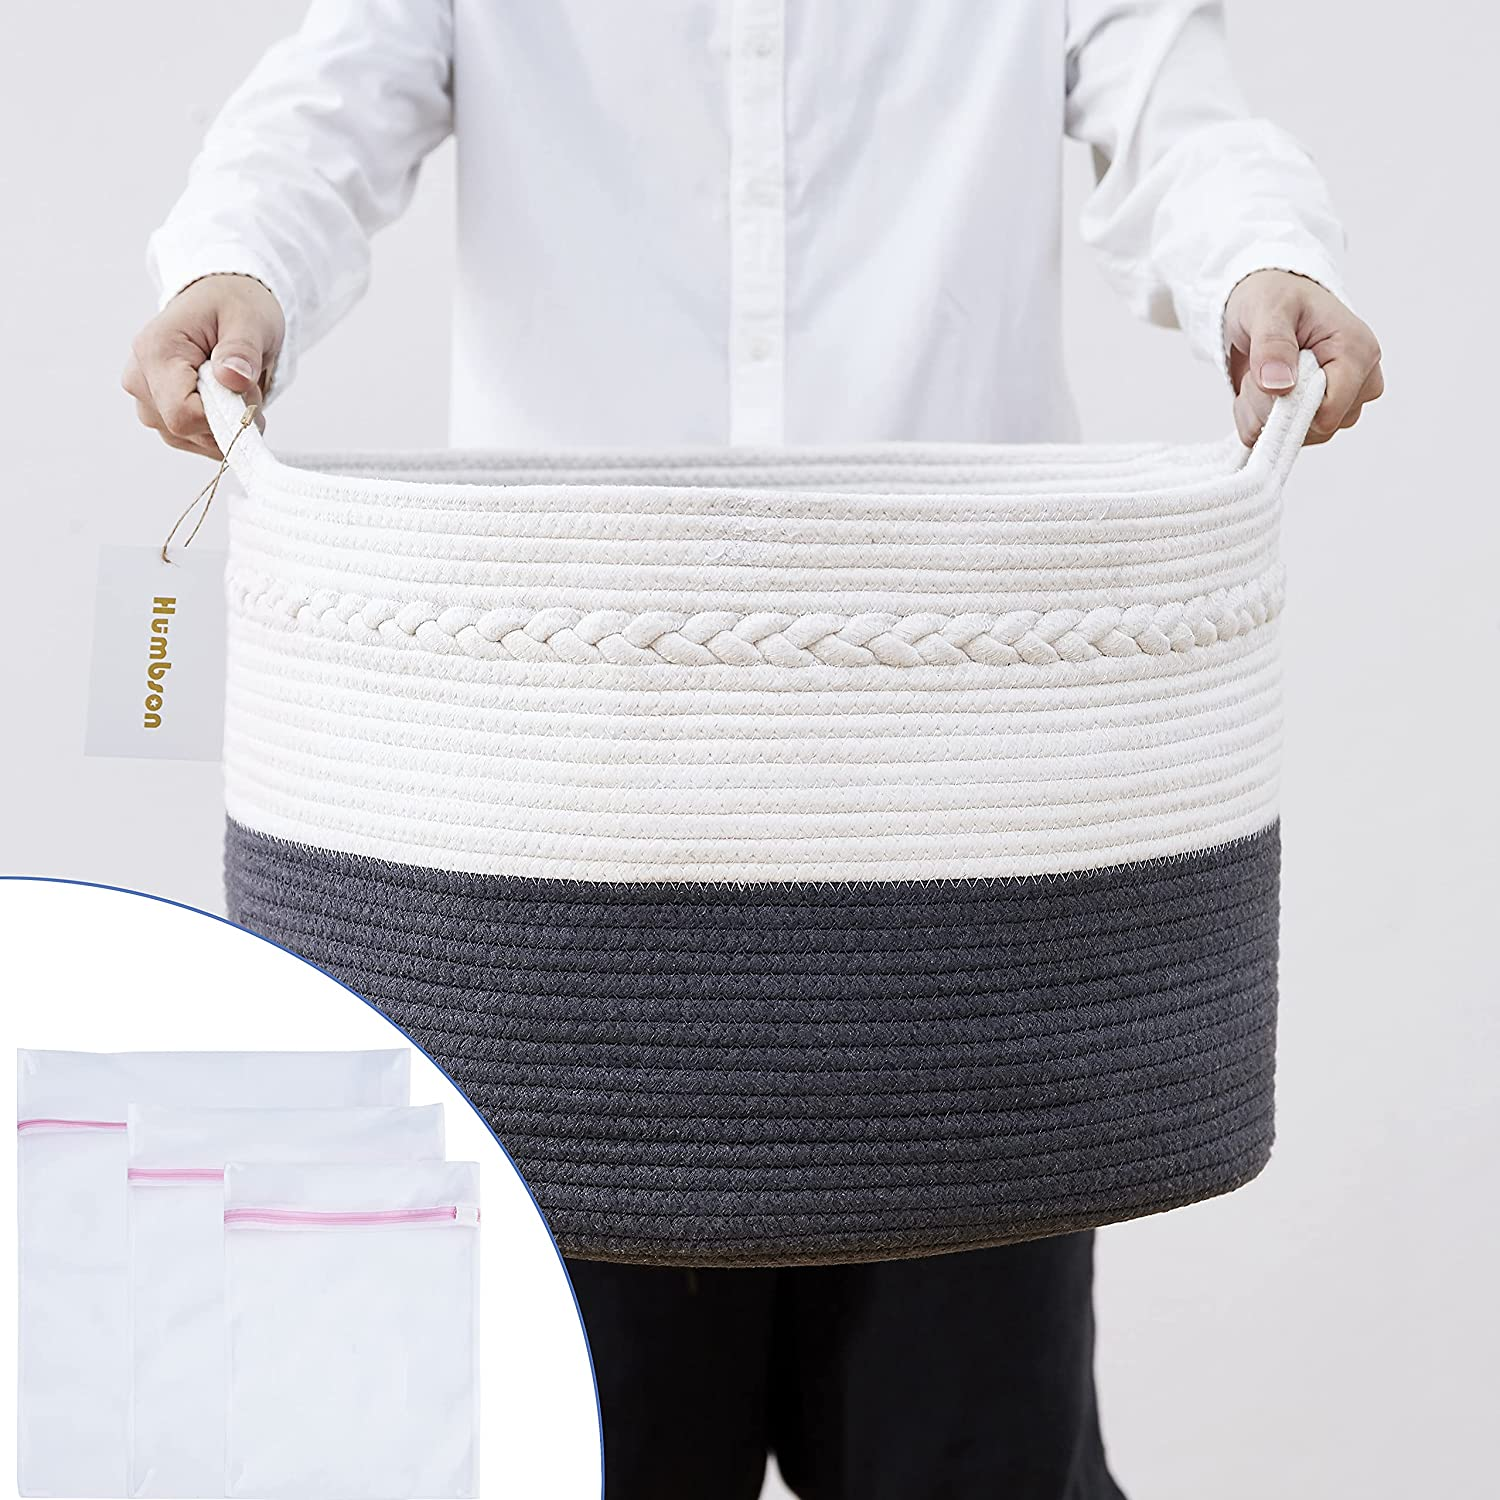 Large Cotton Rope Storage Basket: Baby Laundry Woven Basket - 21.7 x 21.7 x 13.8 Inch - Nursery Toy Basket - Bedroom Living Room Floor Blanket Basket - Round Handles Basket - 87L - Added with 3 Laundry Bags